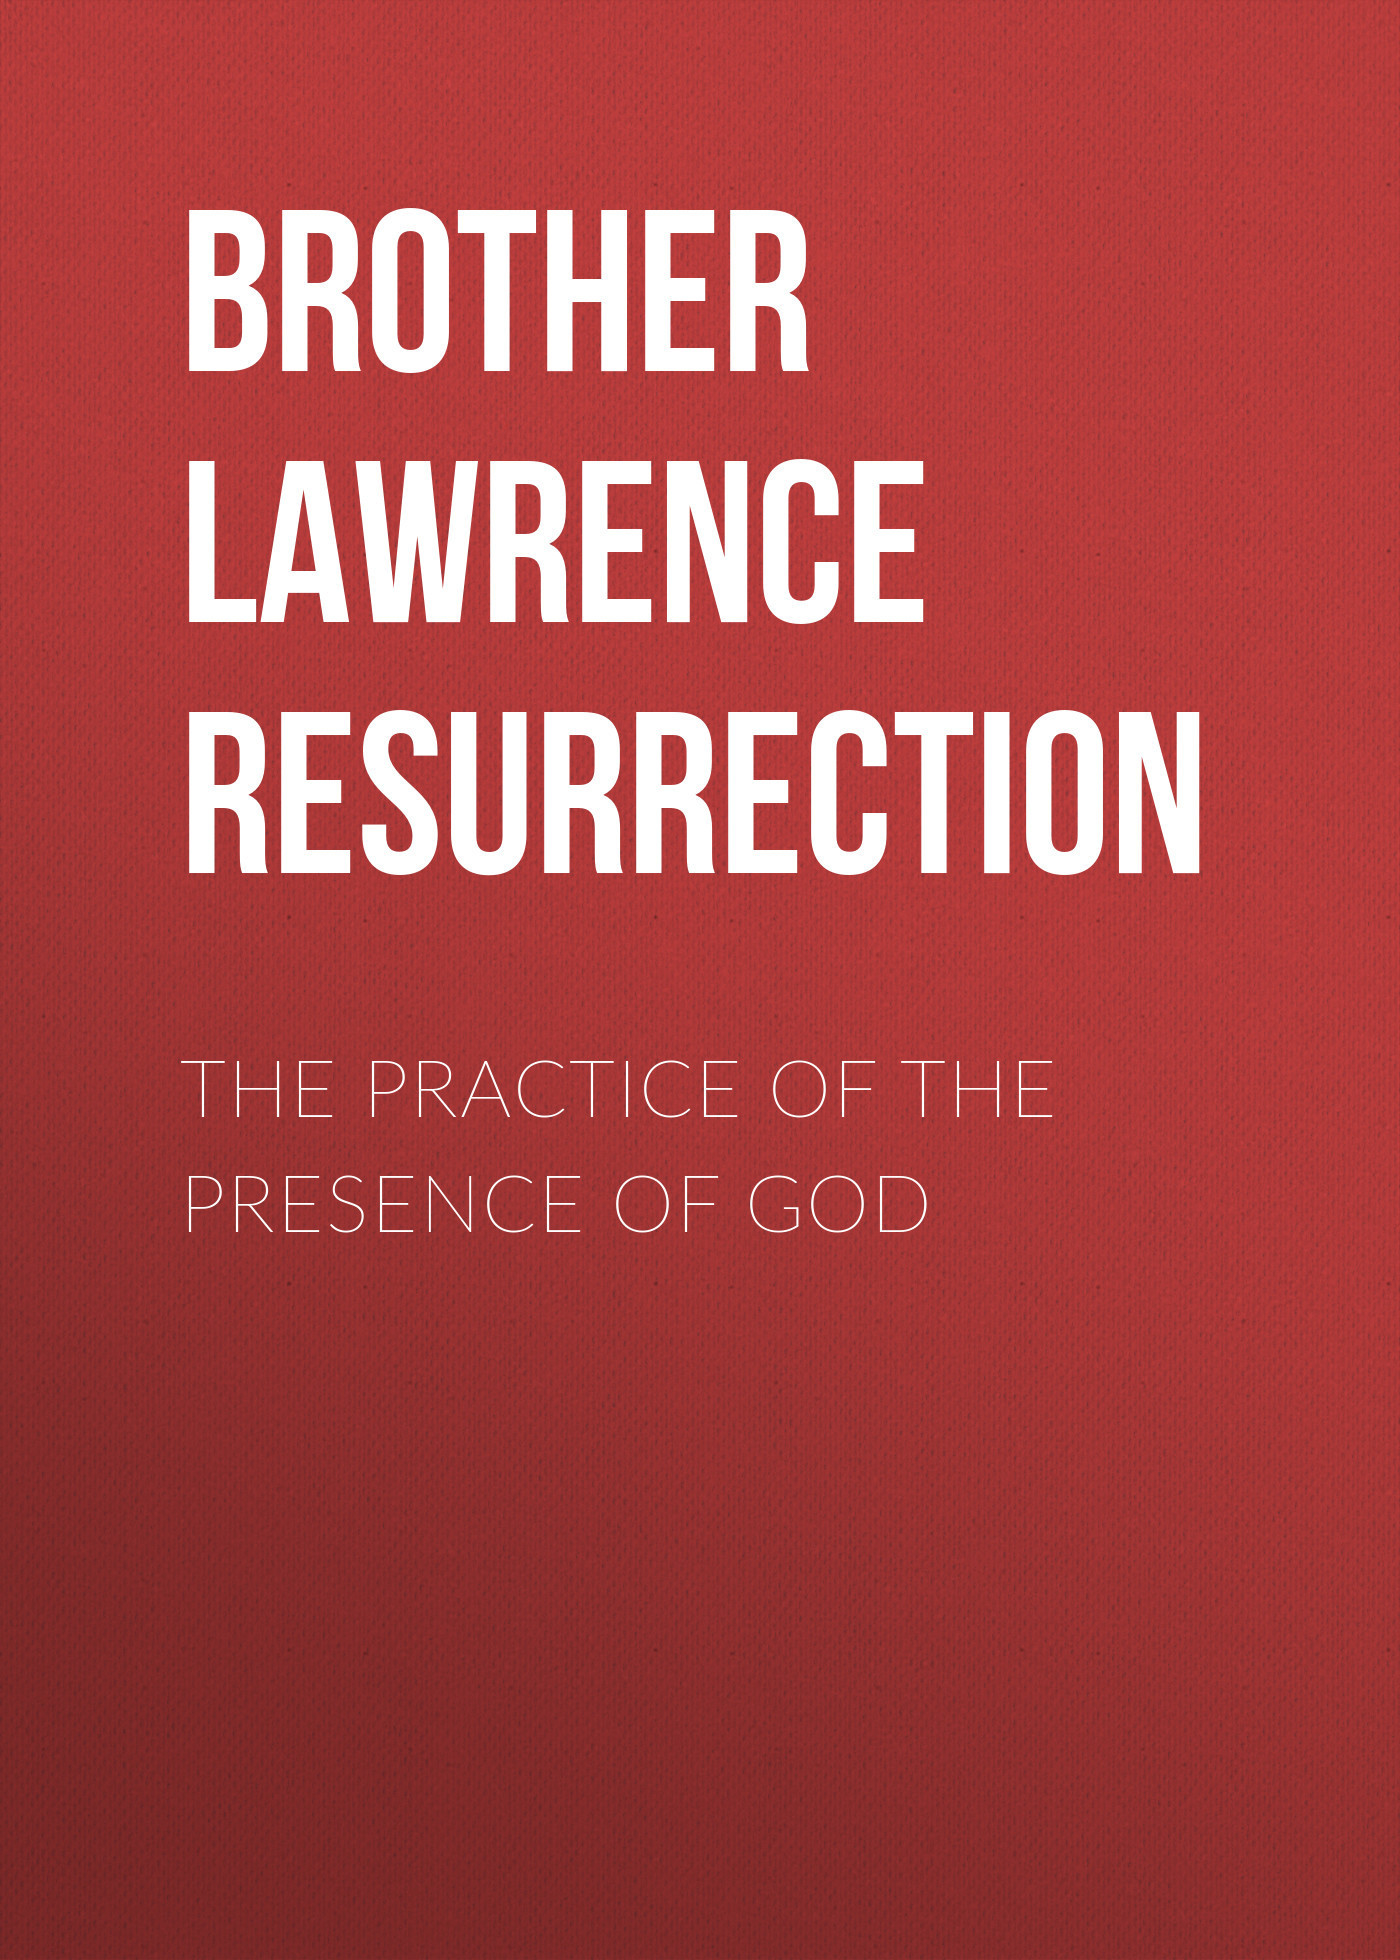 Фото Brother Lawrence of the Resurrection The Practice of the Presence of God